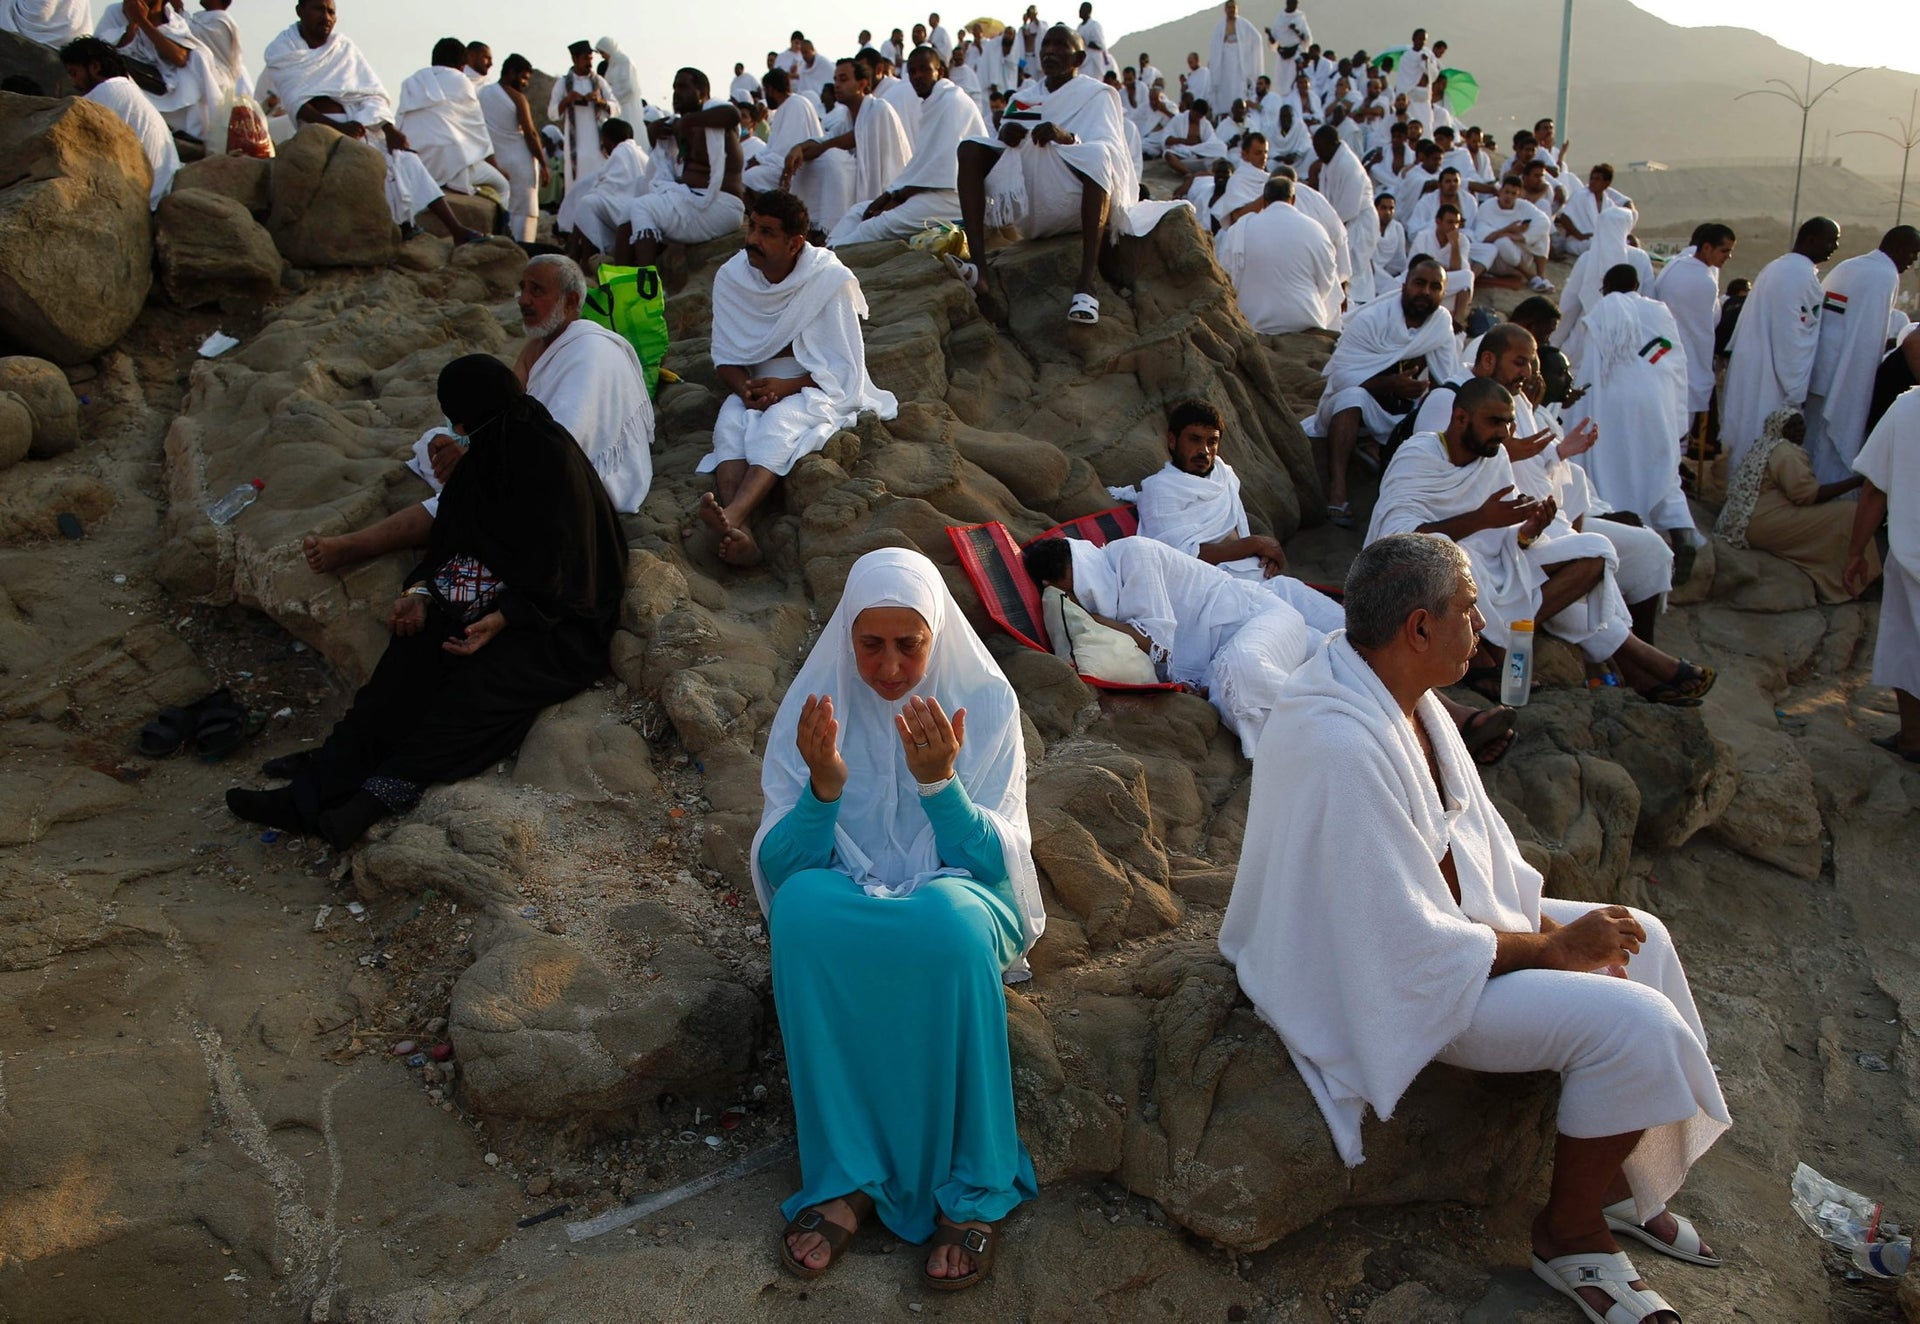 Muslim pilgrims join one of the Hajj rituals on Mount Arafat near Mecca early on September 11, 2016 Close to 1.5 million Muslims from around the world prepared on September 10 night for the climax of the annual hajj pilgrimage at a rocky hill known as Mount Arafat. The pilgrims will mark September 11 with day-long prayers and recitals of the Koran holy book at the spot in western Saudi Arabia where they believe their Prophet Mohammed gave his last hajj sermon.